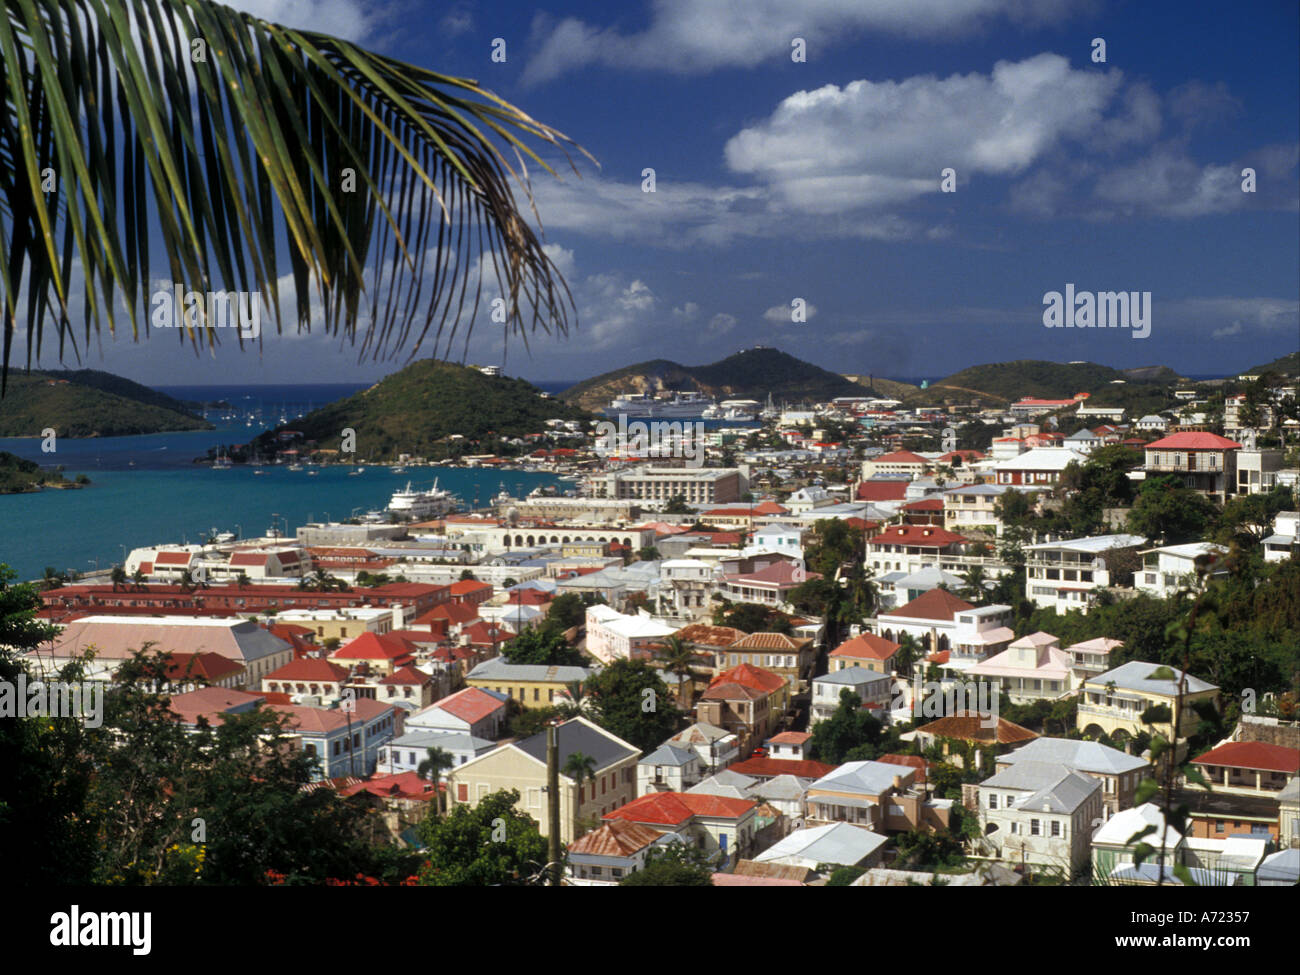 AJ2360, Karibik, US Virgin Islands, St. Thomas, V.I. Stockbild